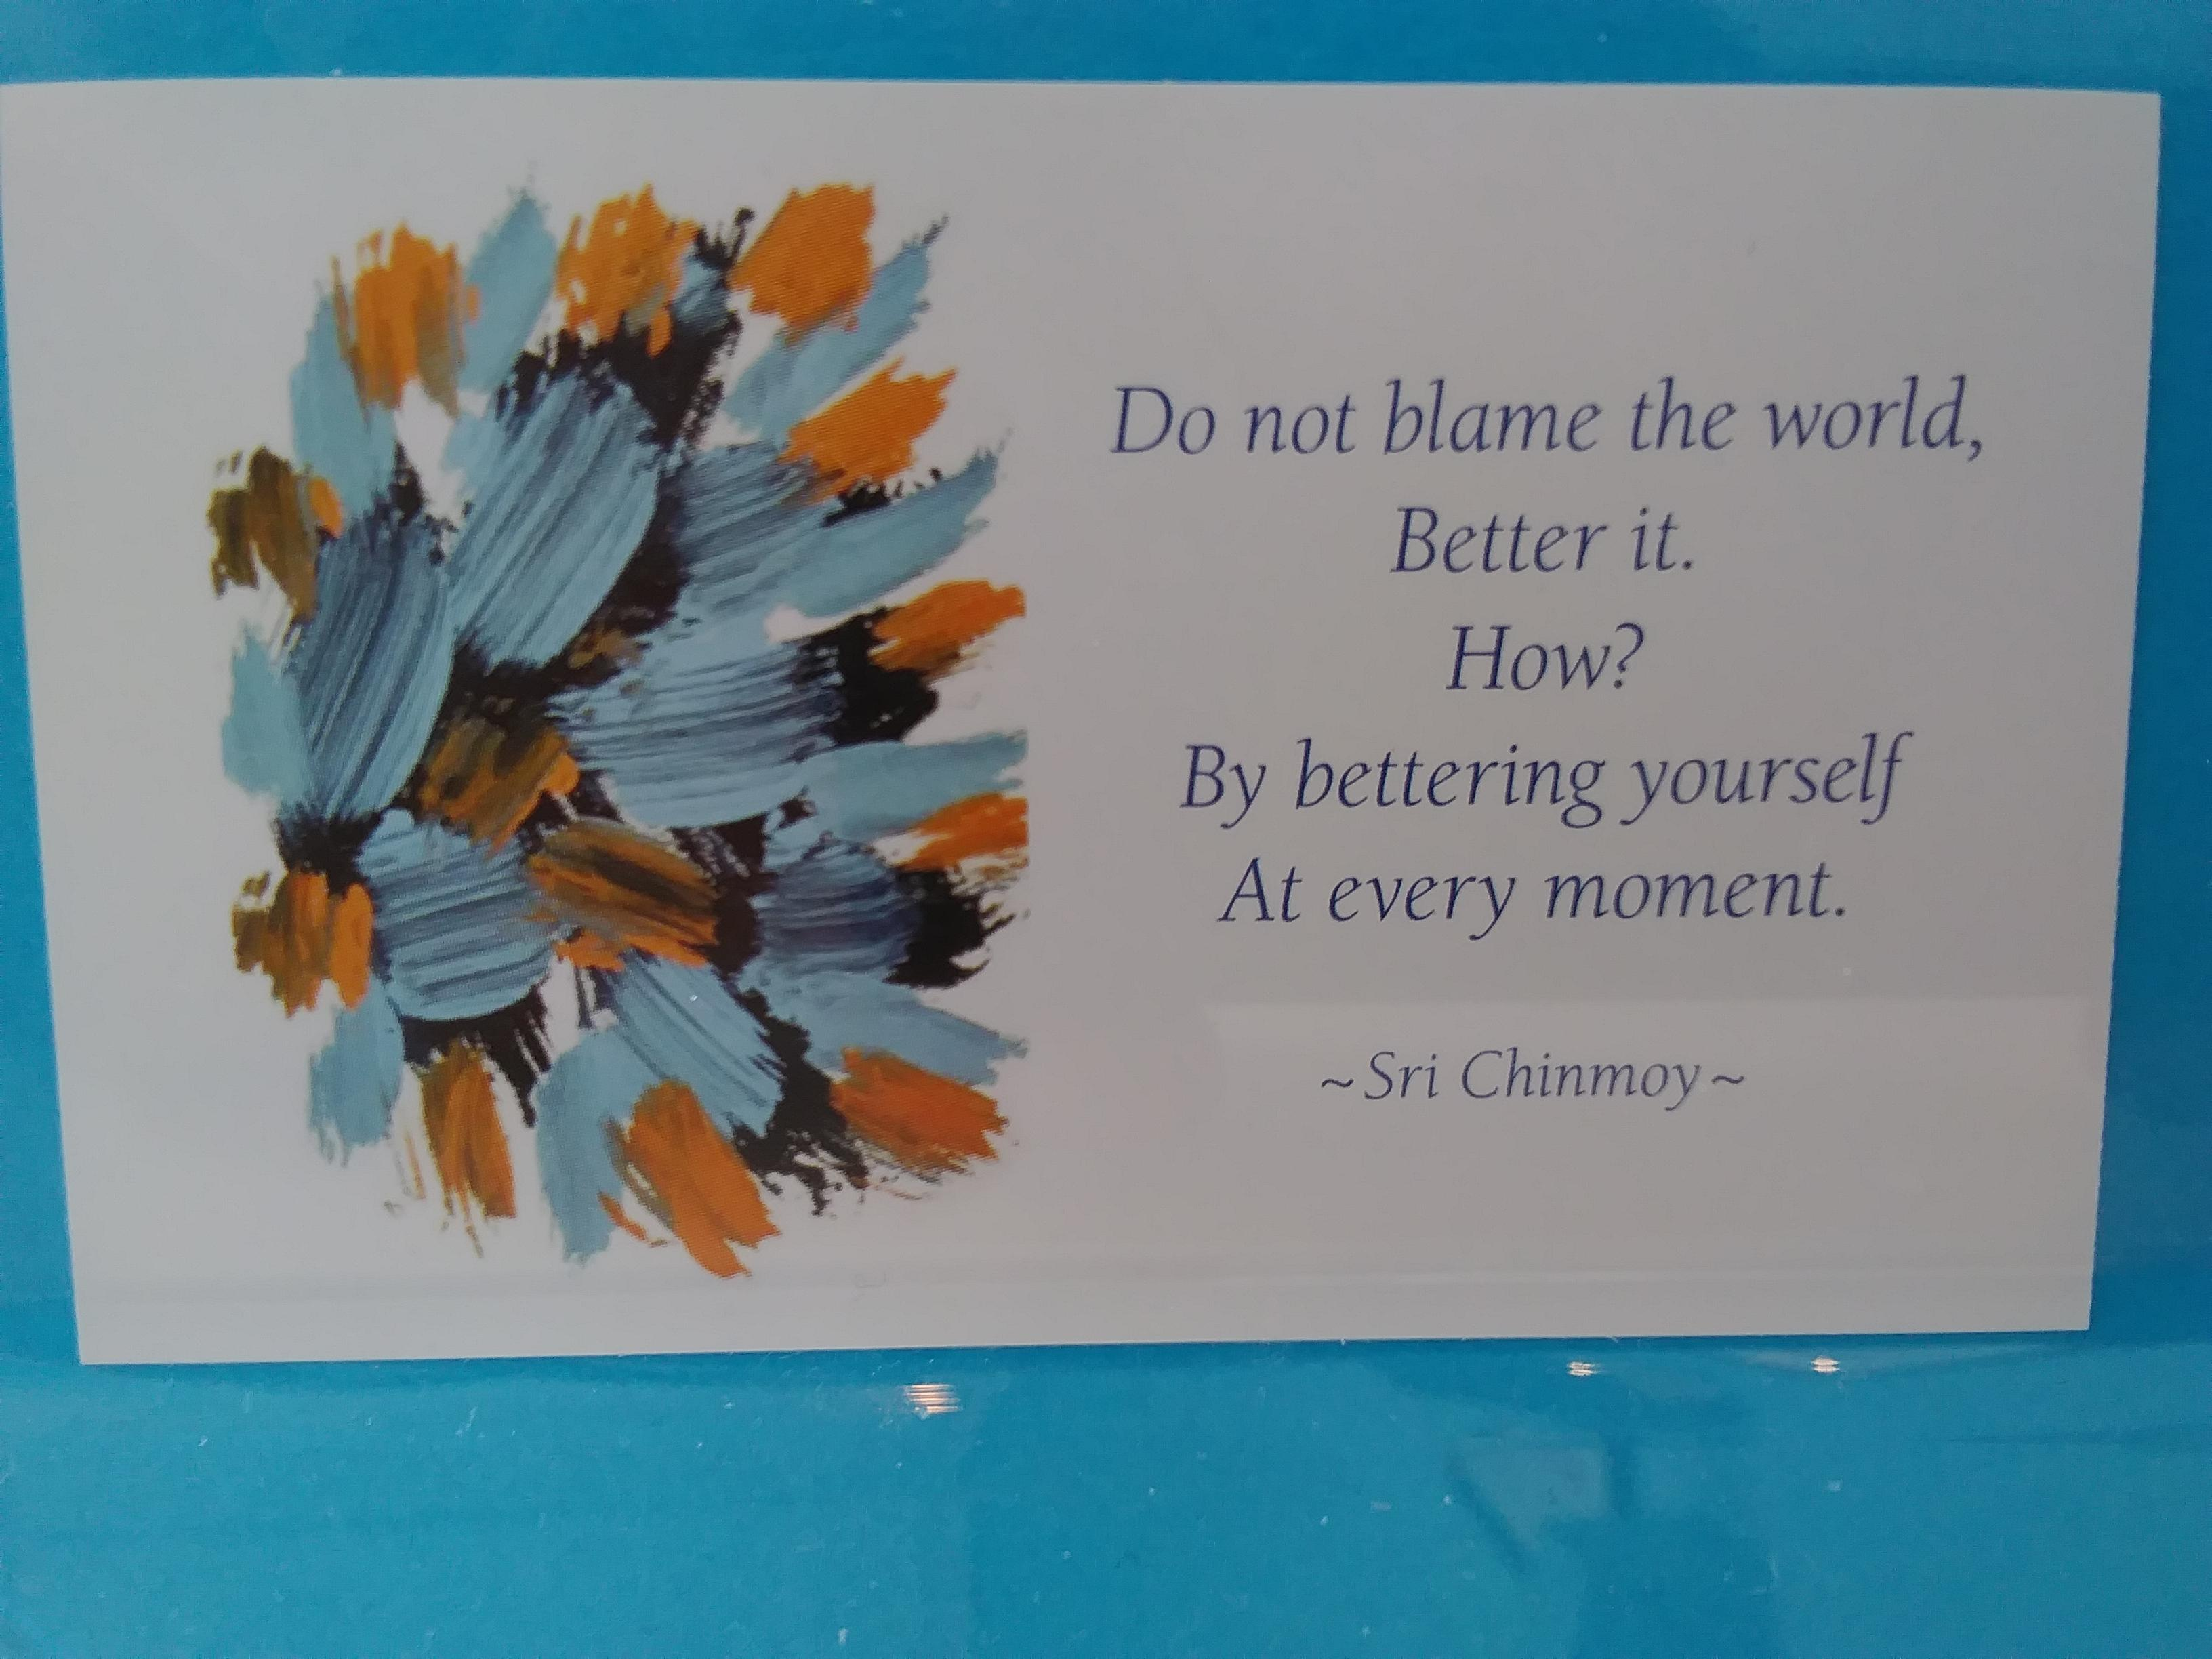 [Image] Found at Ananda Fuara in San Francisco